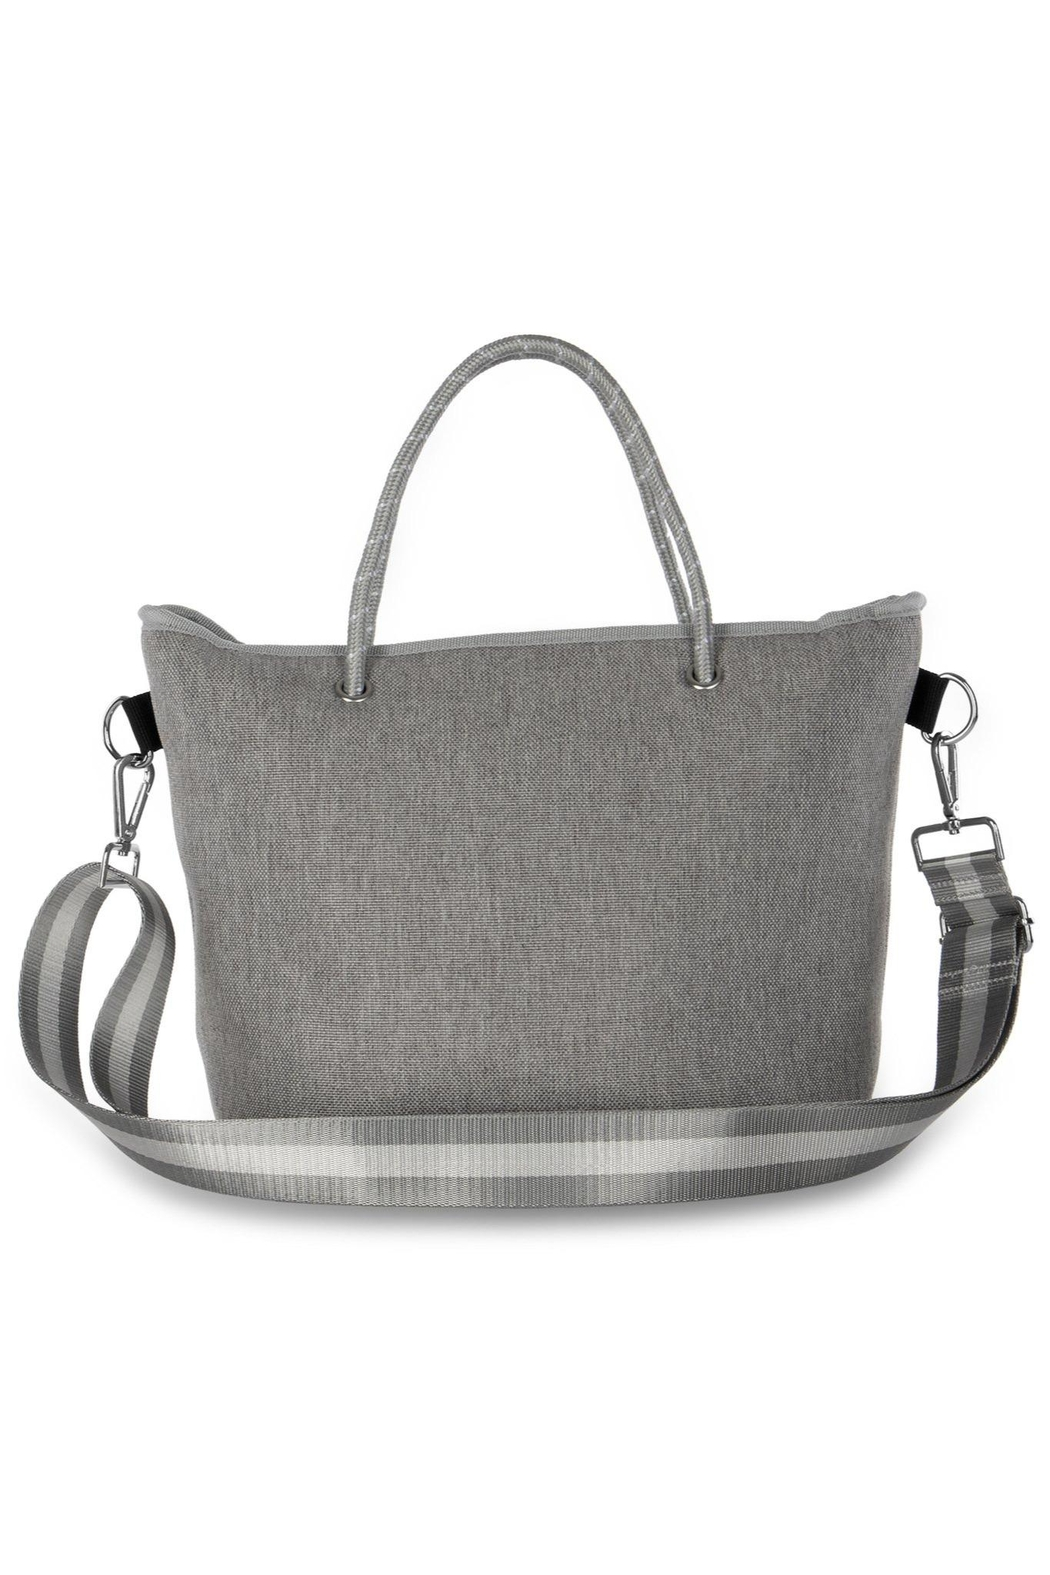 Haute Shore Bags Linen Textured Tote - Back Cropped Image